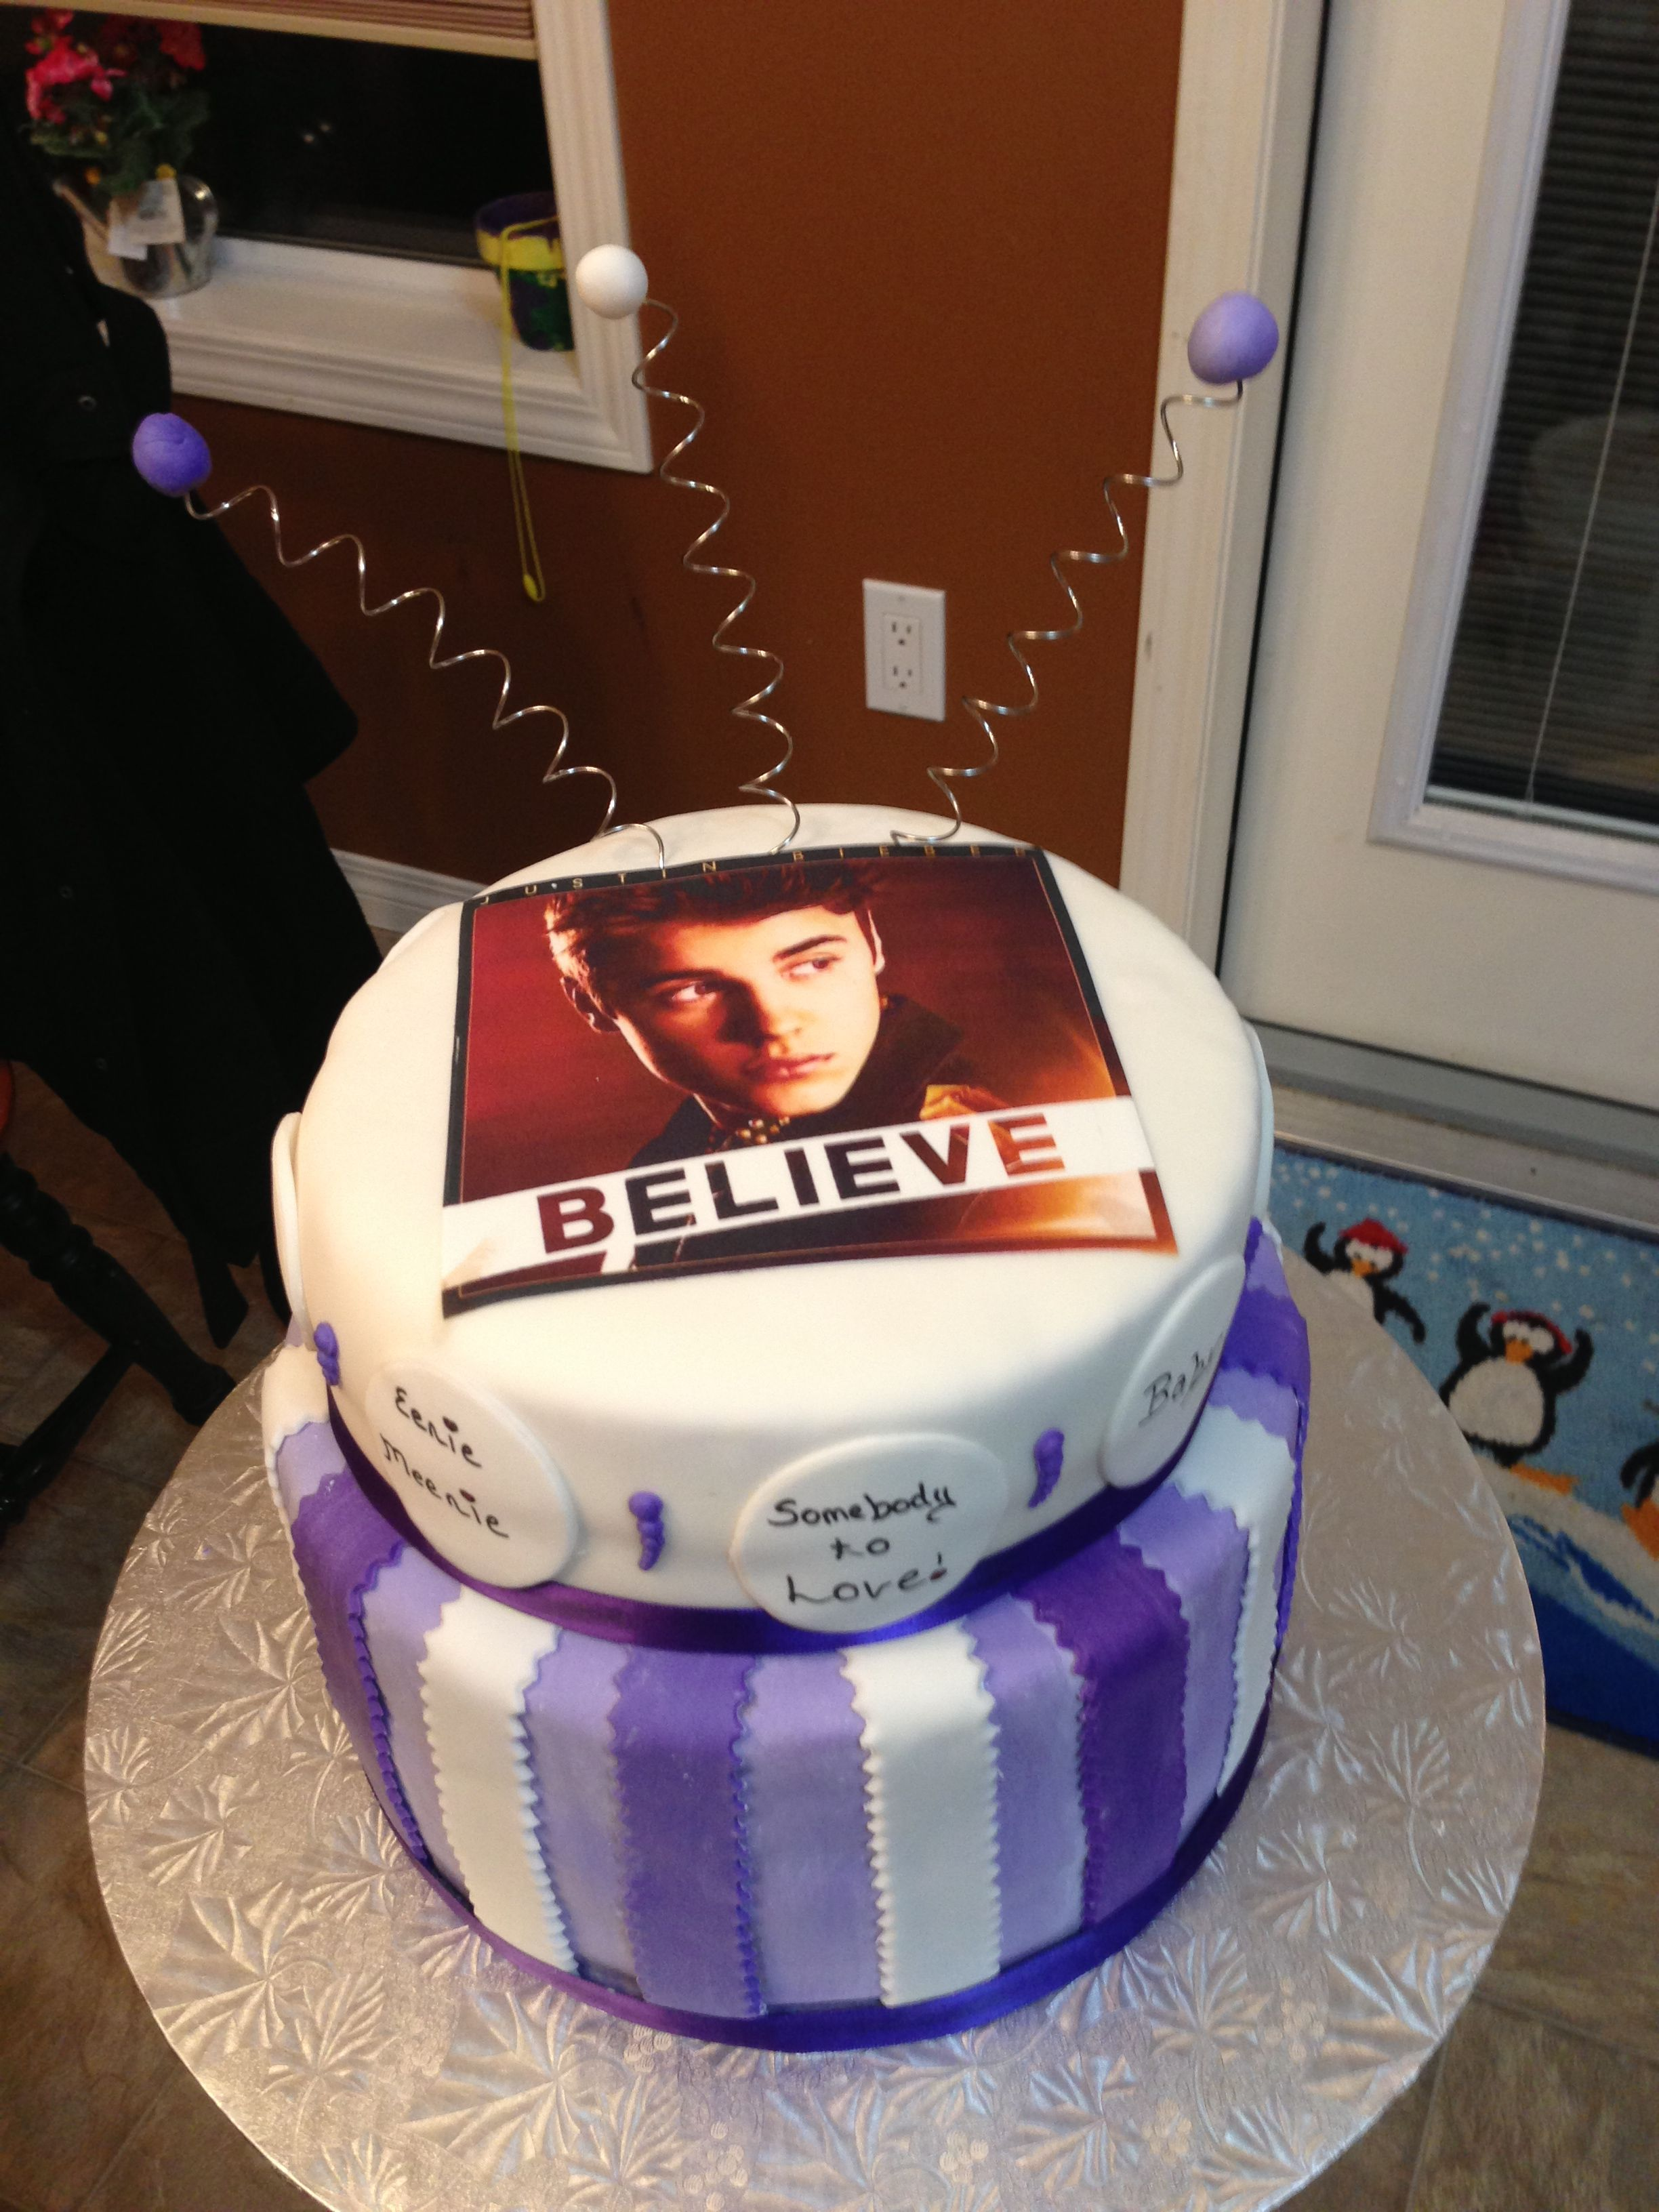 Justin Bieber Believe Cake With Images Justin Bieber Cake